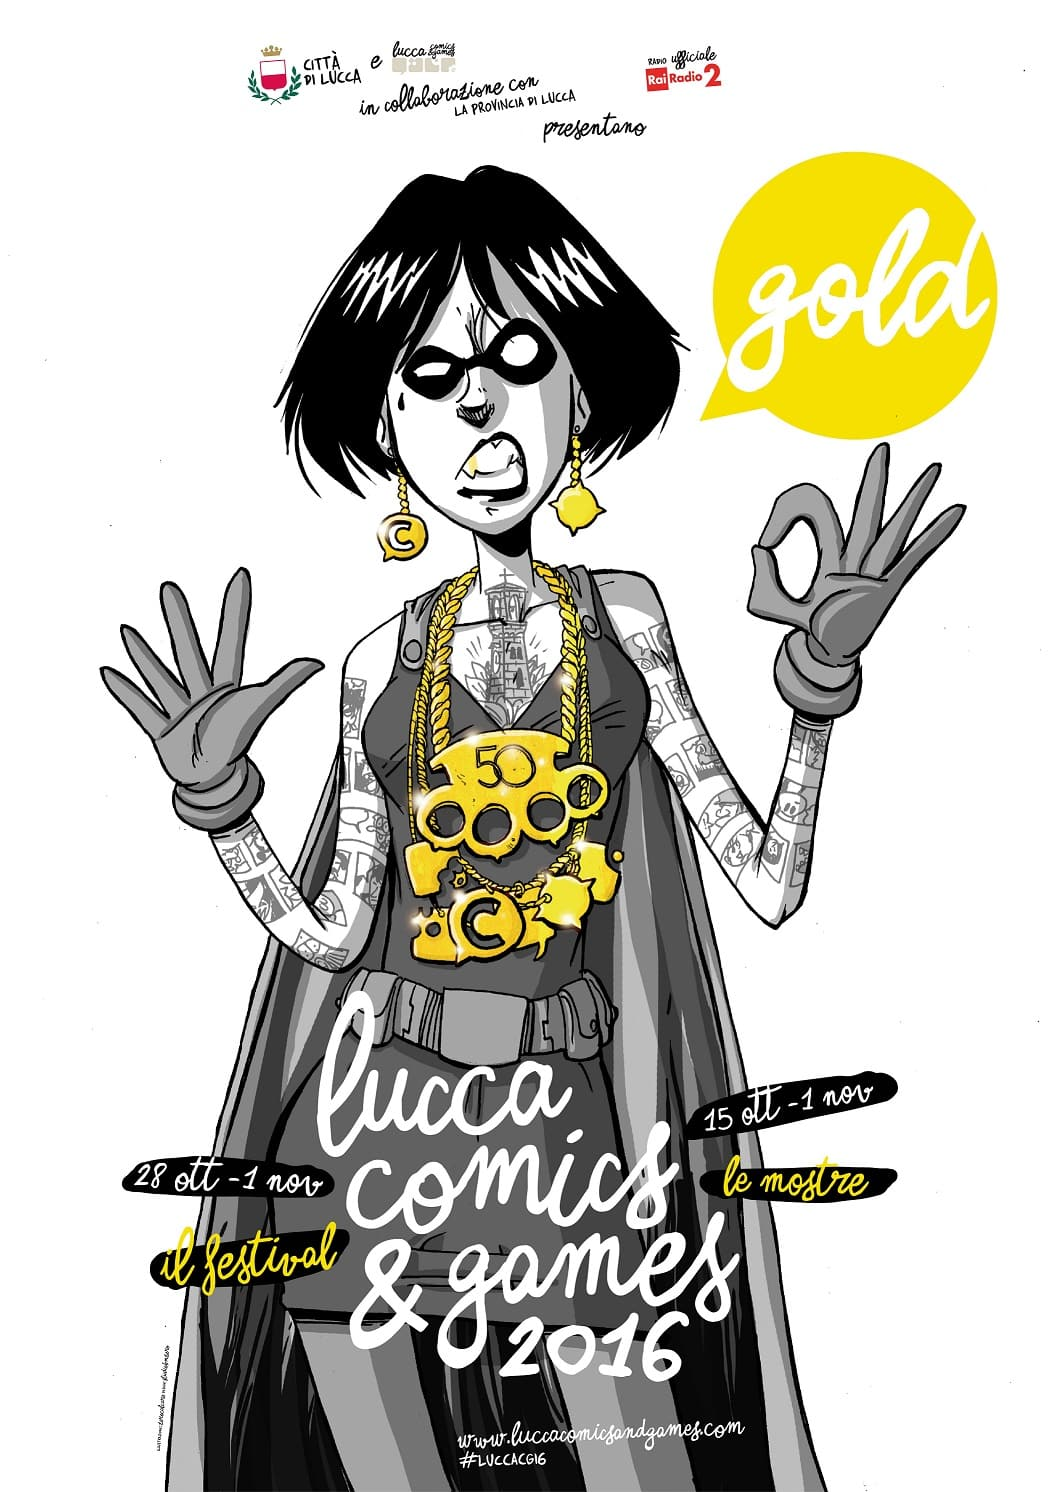 Poster-Lucca-Comics-Games-Gold_Notizie